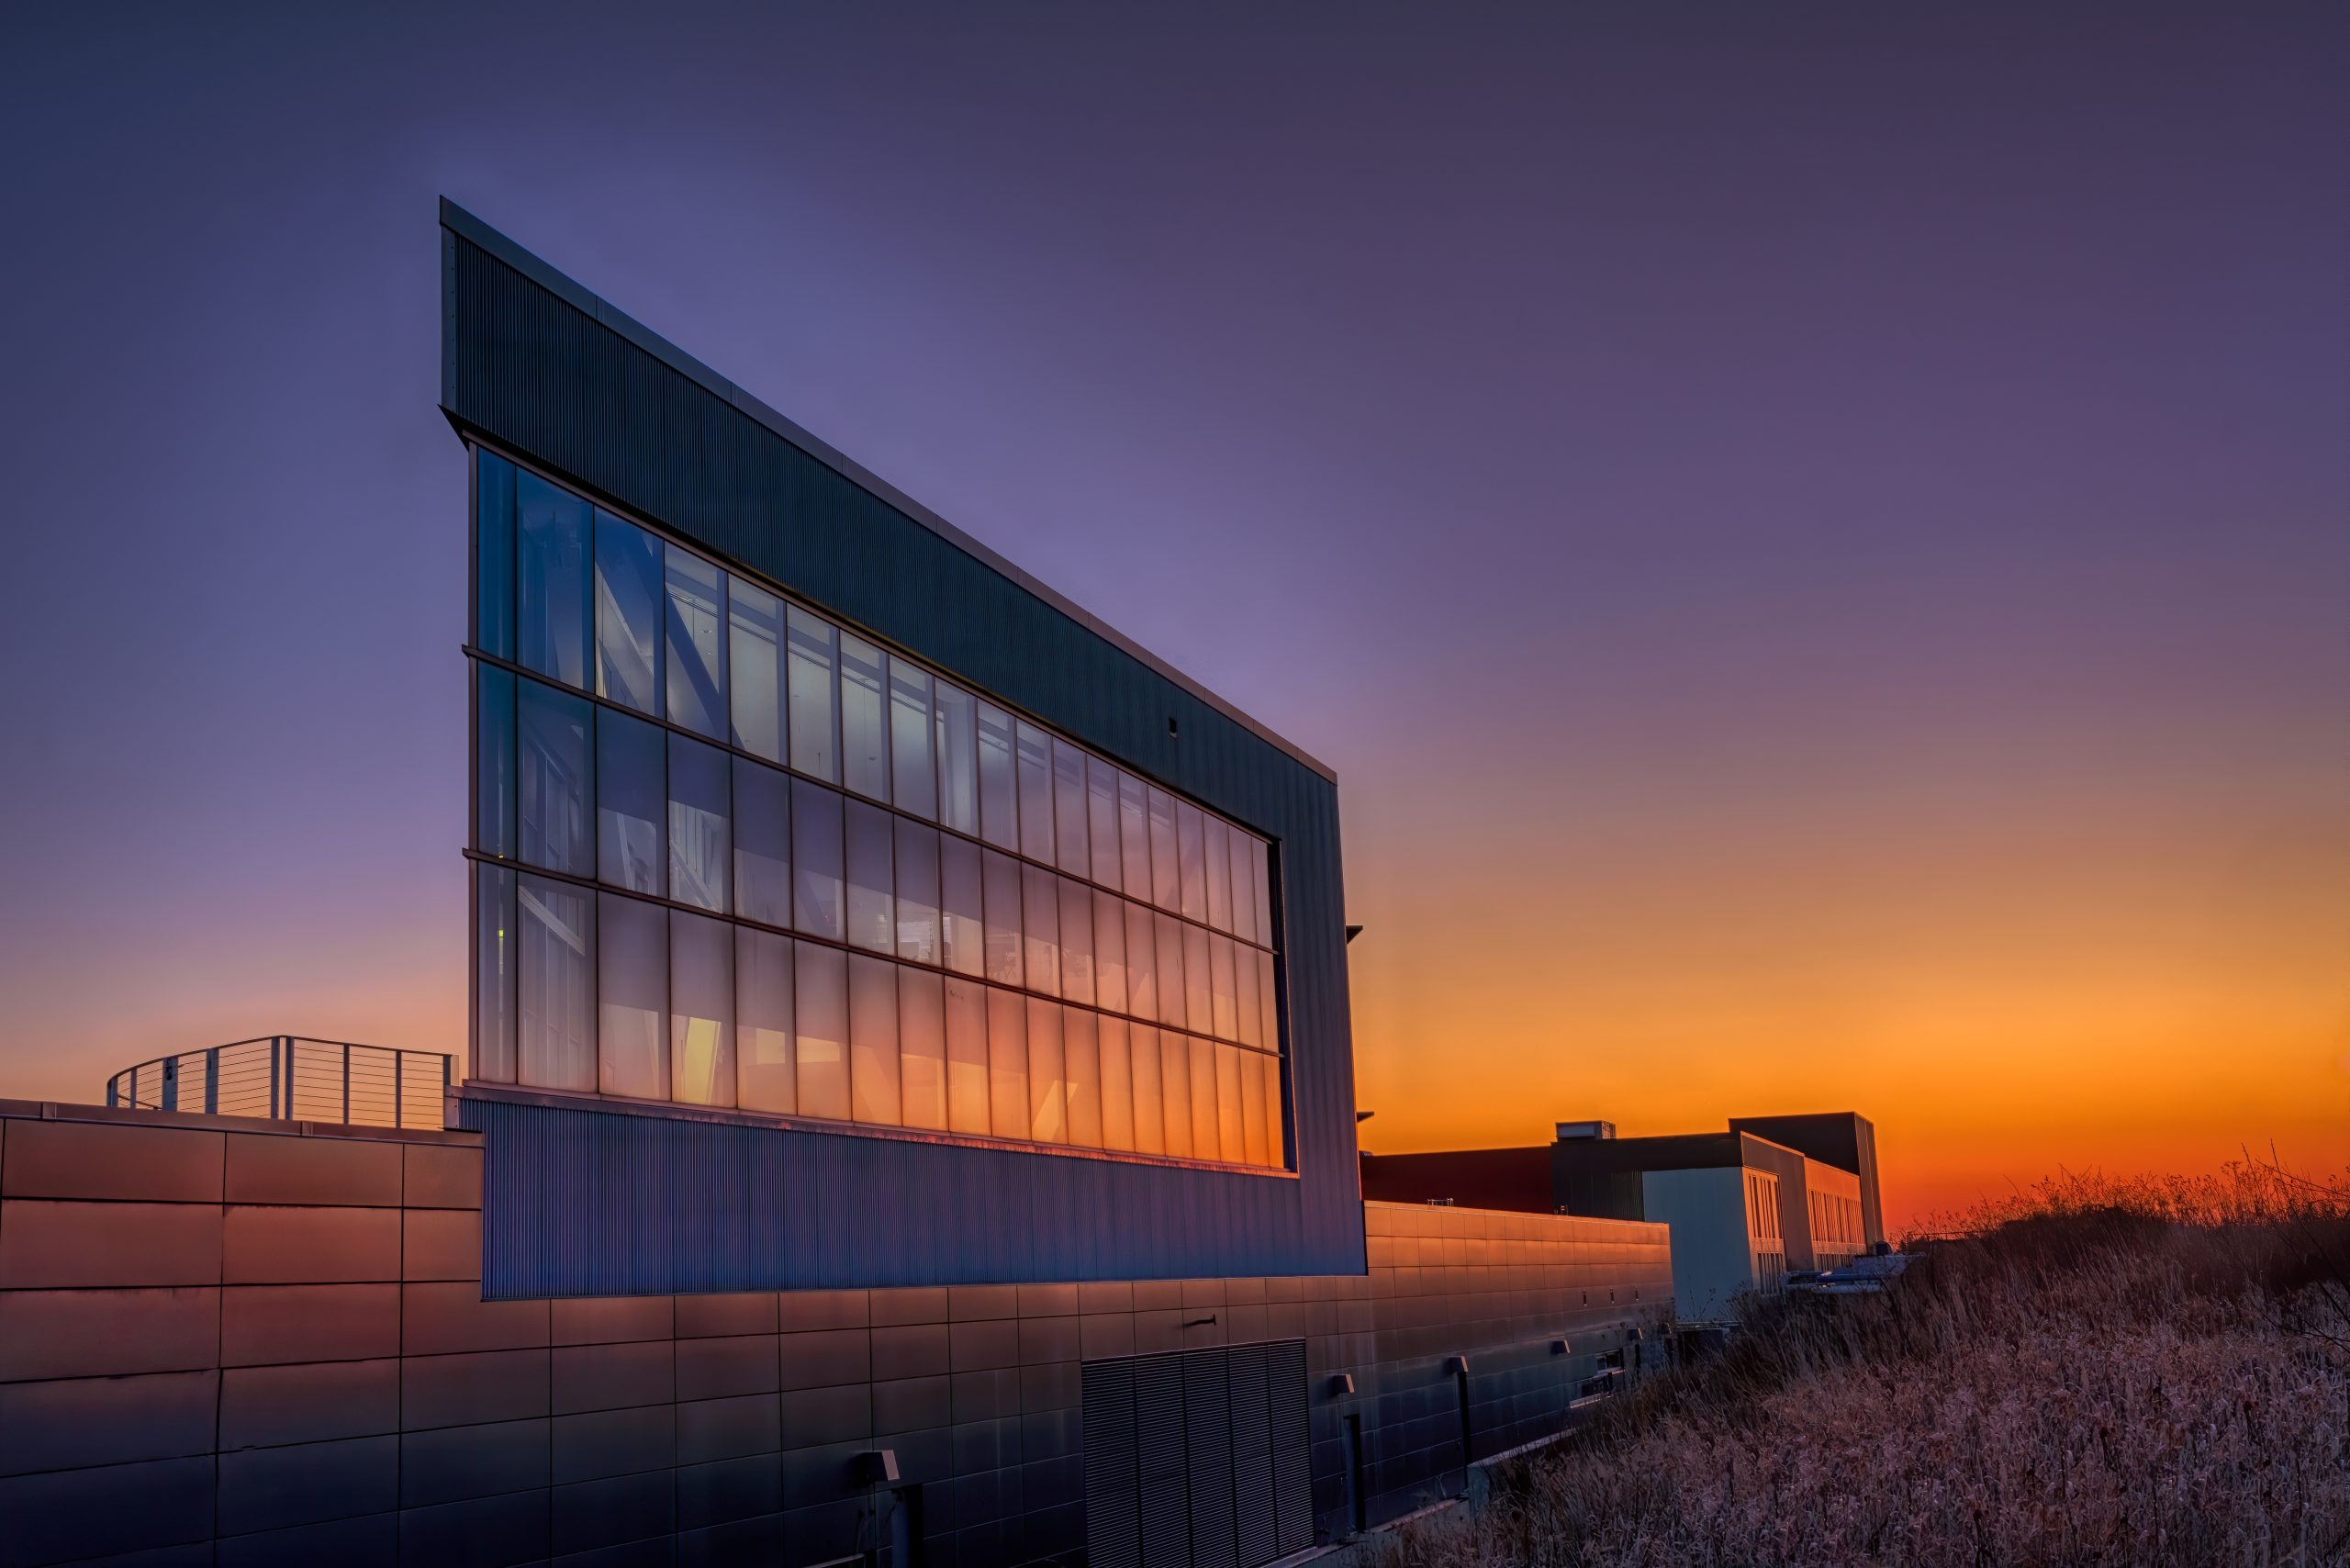 The sun greets the IARC Office, Technical and Education Building in February 2020. building, sun, sunrise, sky, landscape Photo: Tim Chapman